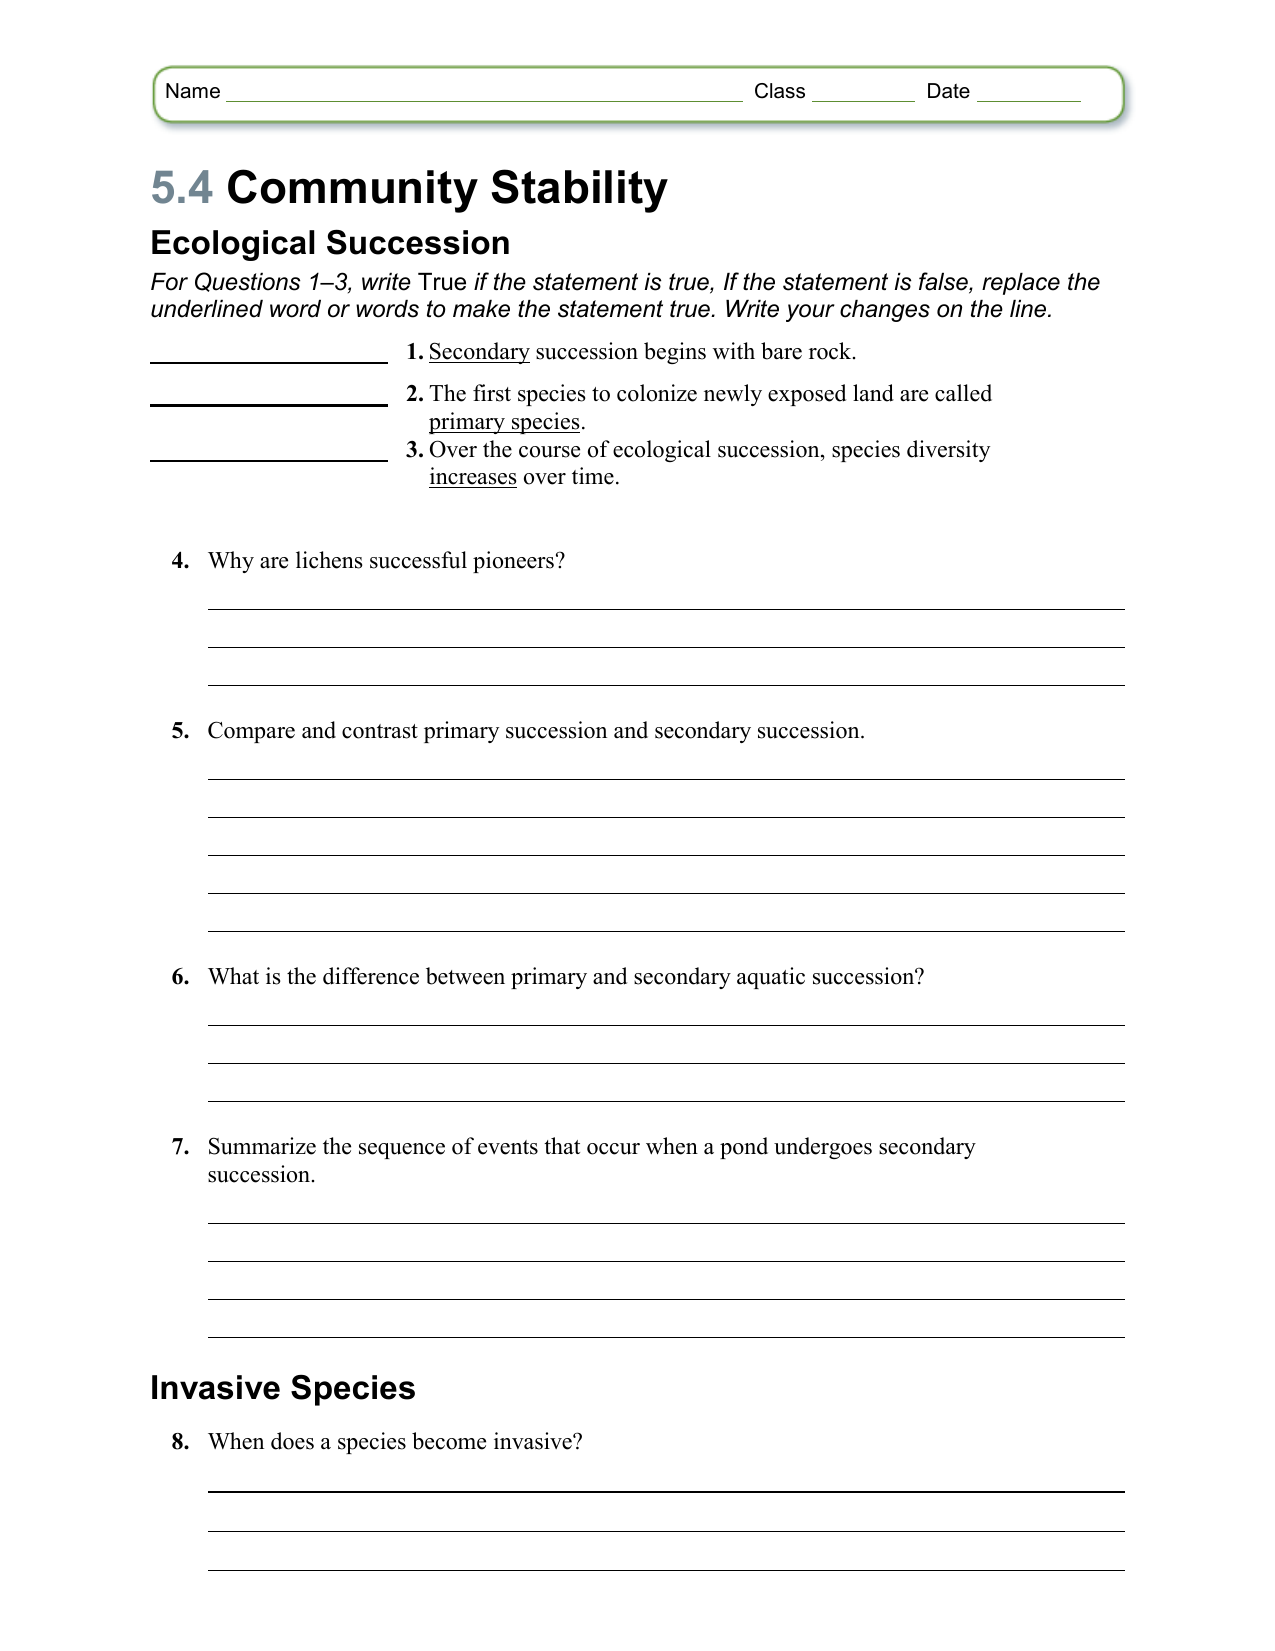 Worksheet Chapter 54 – Ecological Succession Worksheet Answers